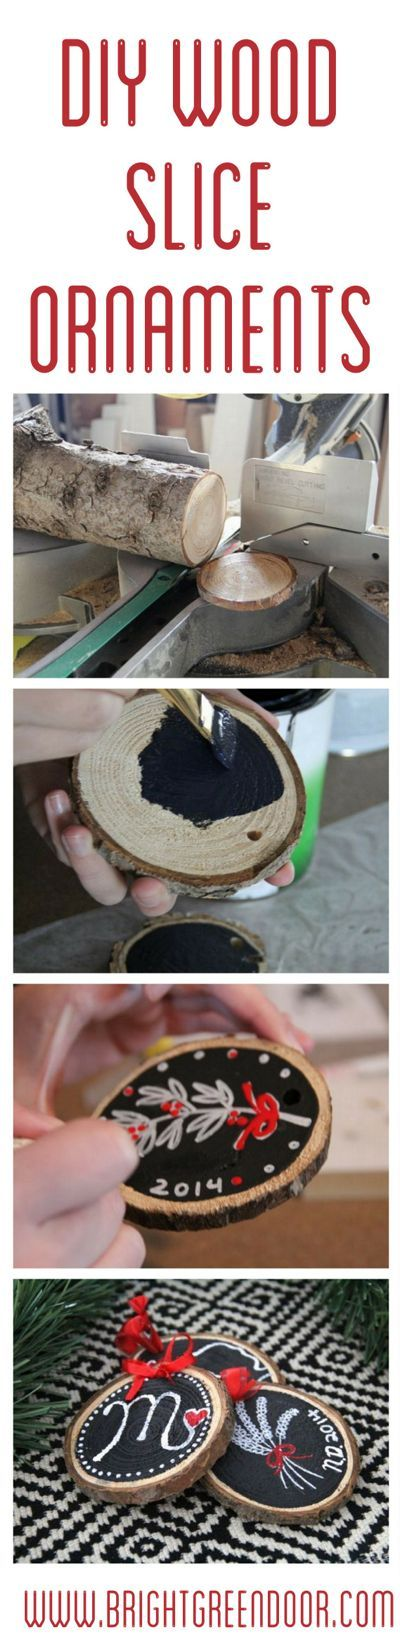 www.brightgreendoor.com DIY Wood Slice Chalkboard Ornaments